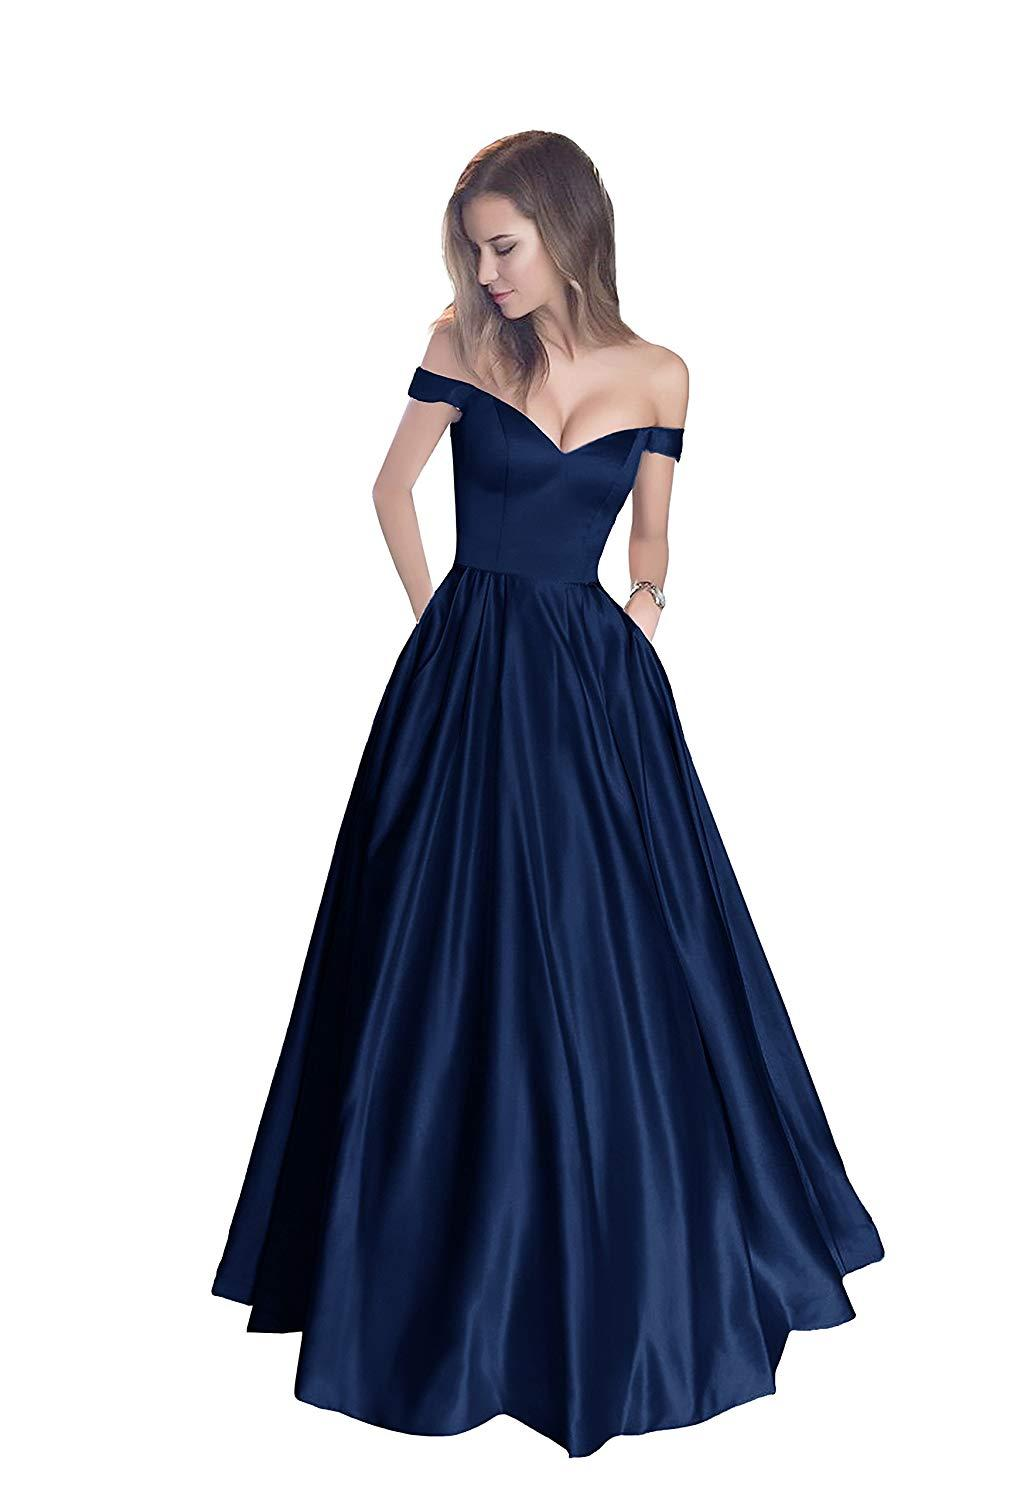 Alexzendra Off The Shoulder Navy Blue   Prom     Dress   with Pocket 2019 Formal Evening   Dresses   Party   Dress